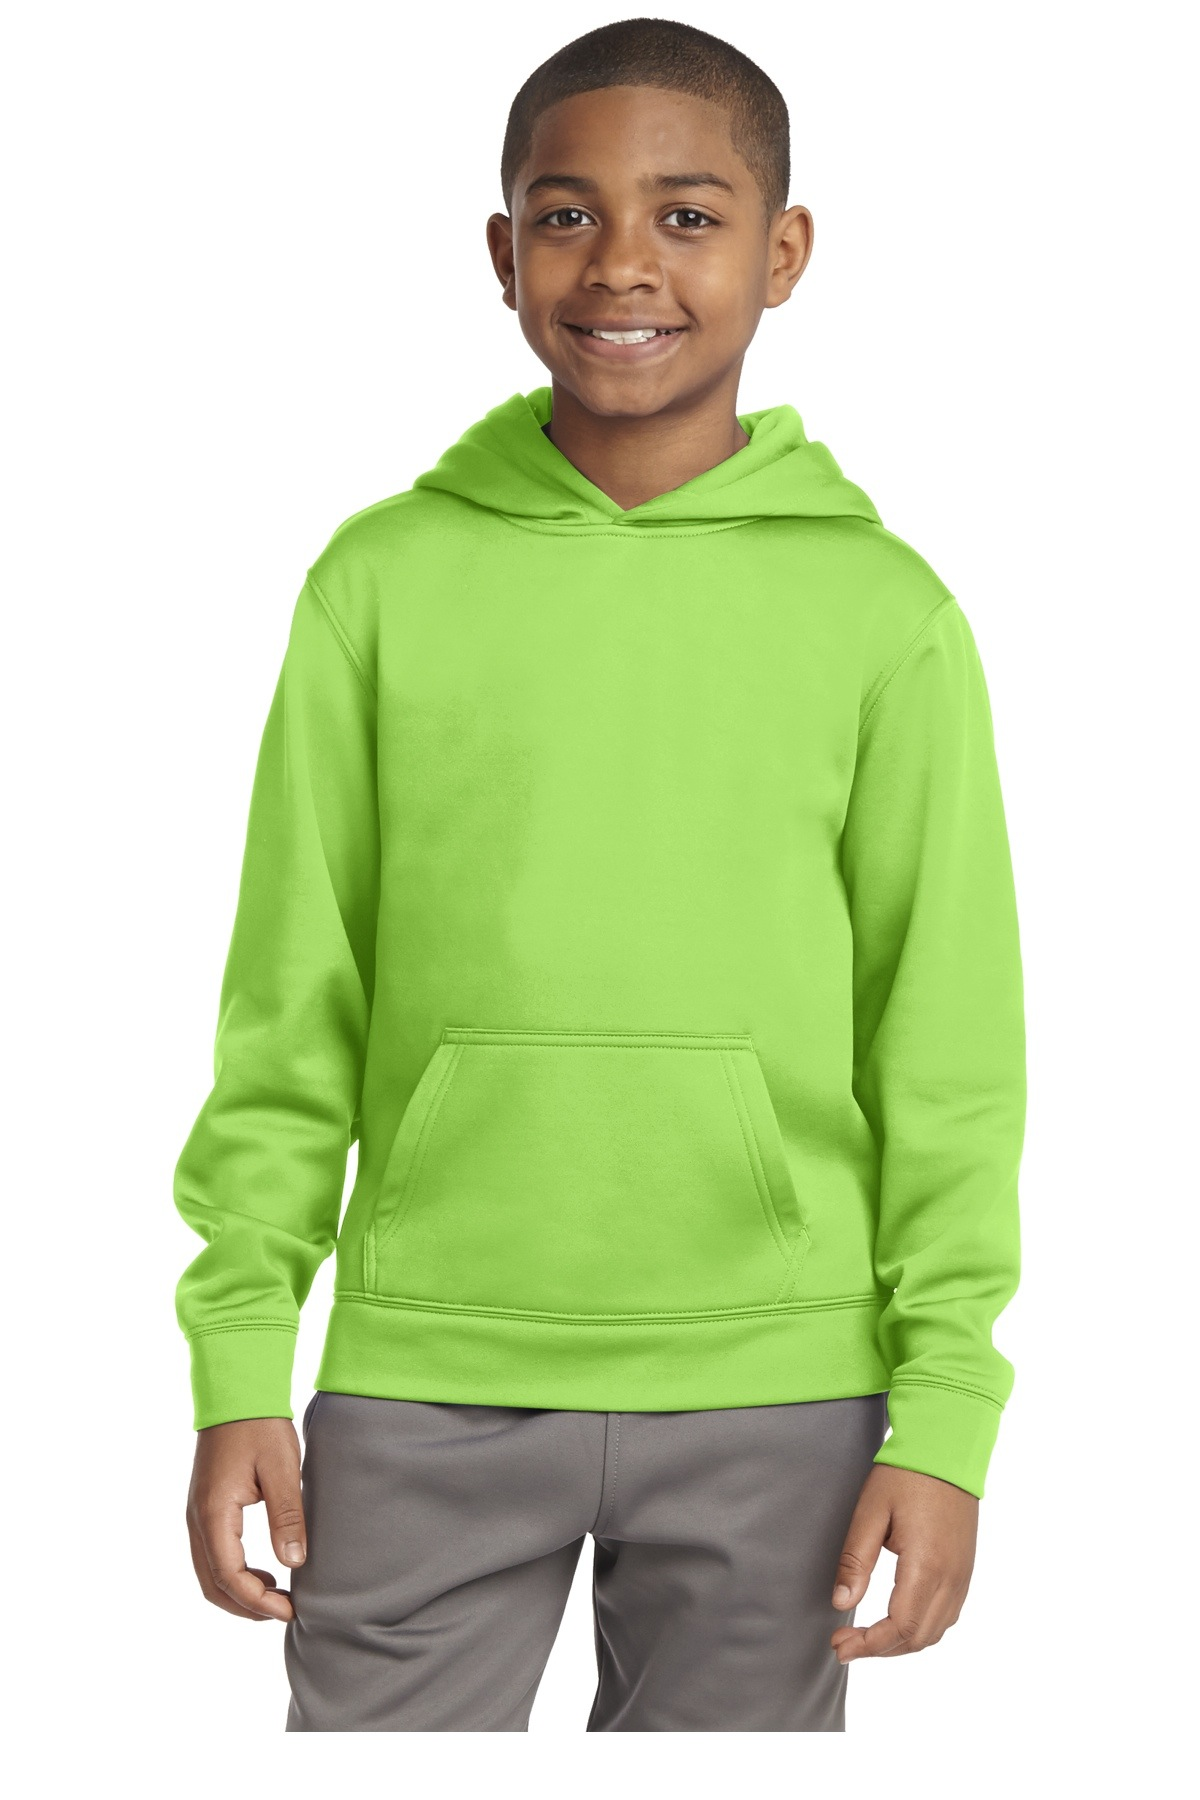 YST244 Sport-Tek Youth Sport-Wick Fleece Hooded Pullover